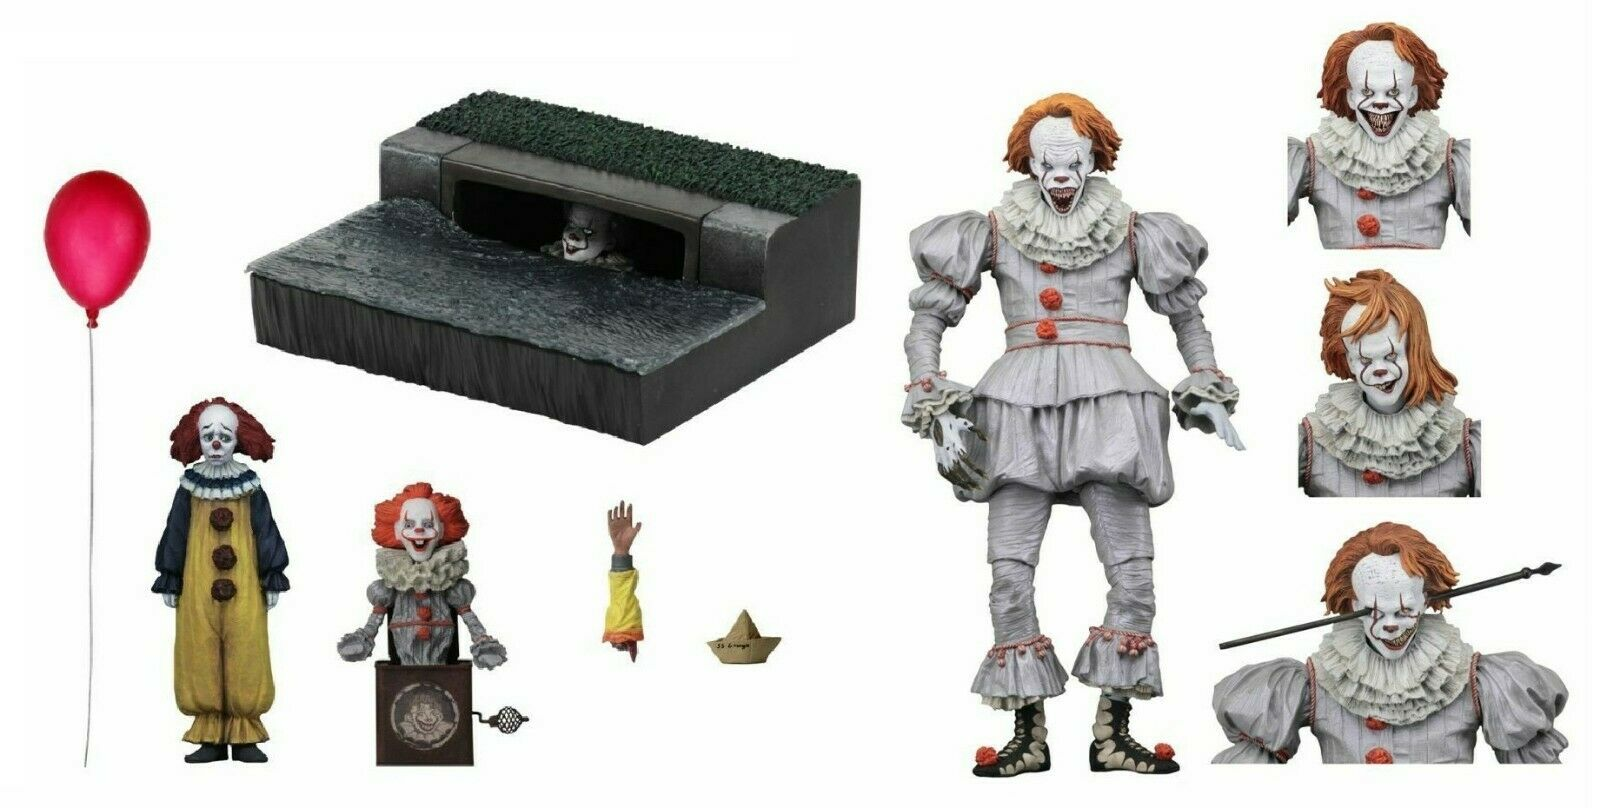 IT 2017 Pennywise Accessory Set & Well House Pennywise Action Figure NECA